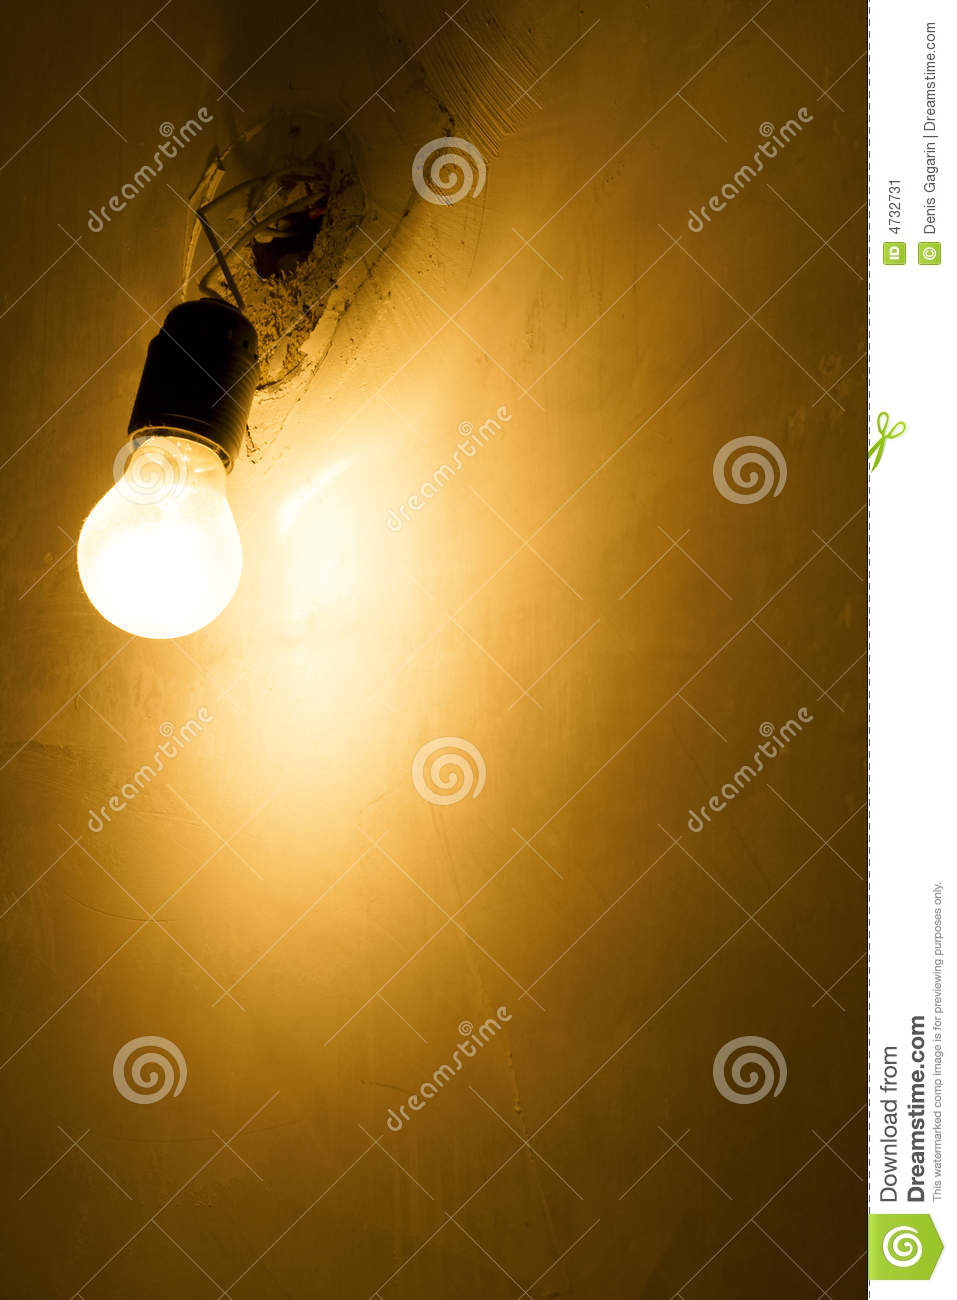 Electric Lantern Wall Lights : Electric Light And Wall Stock Image - Image: 4732731